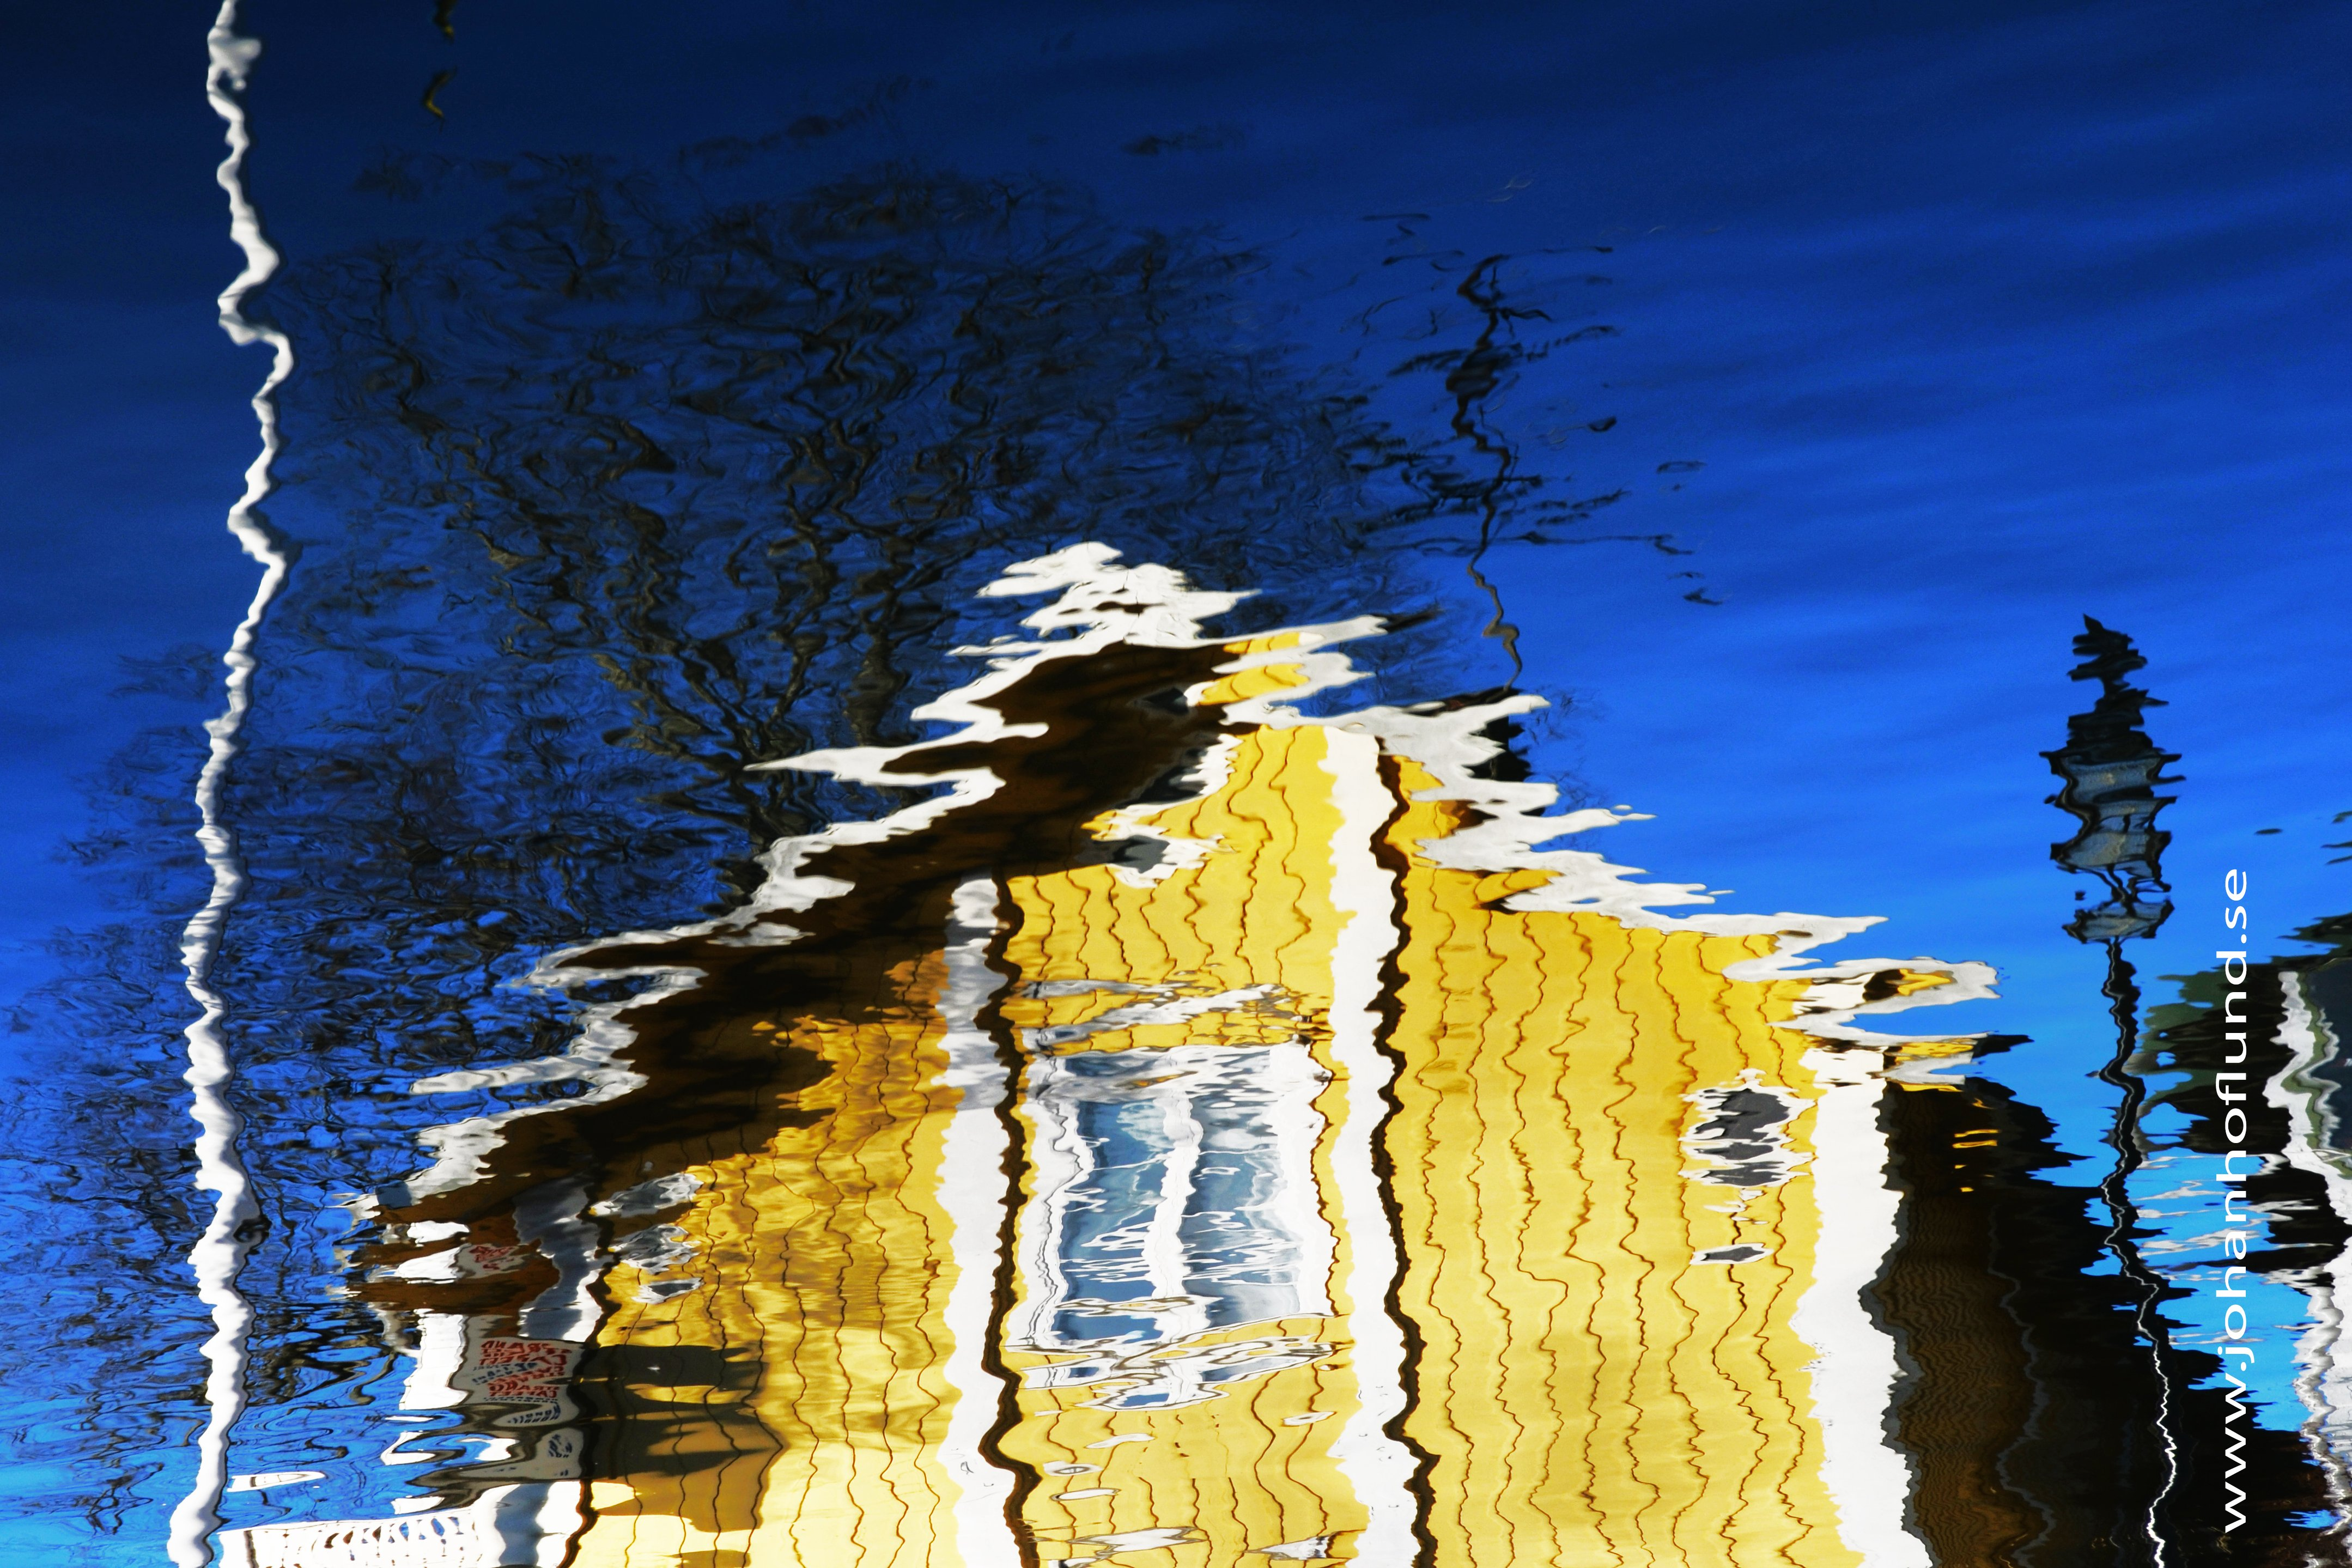 Blue sky, blue water and a yellow house